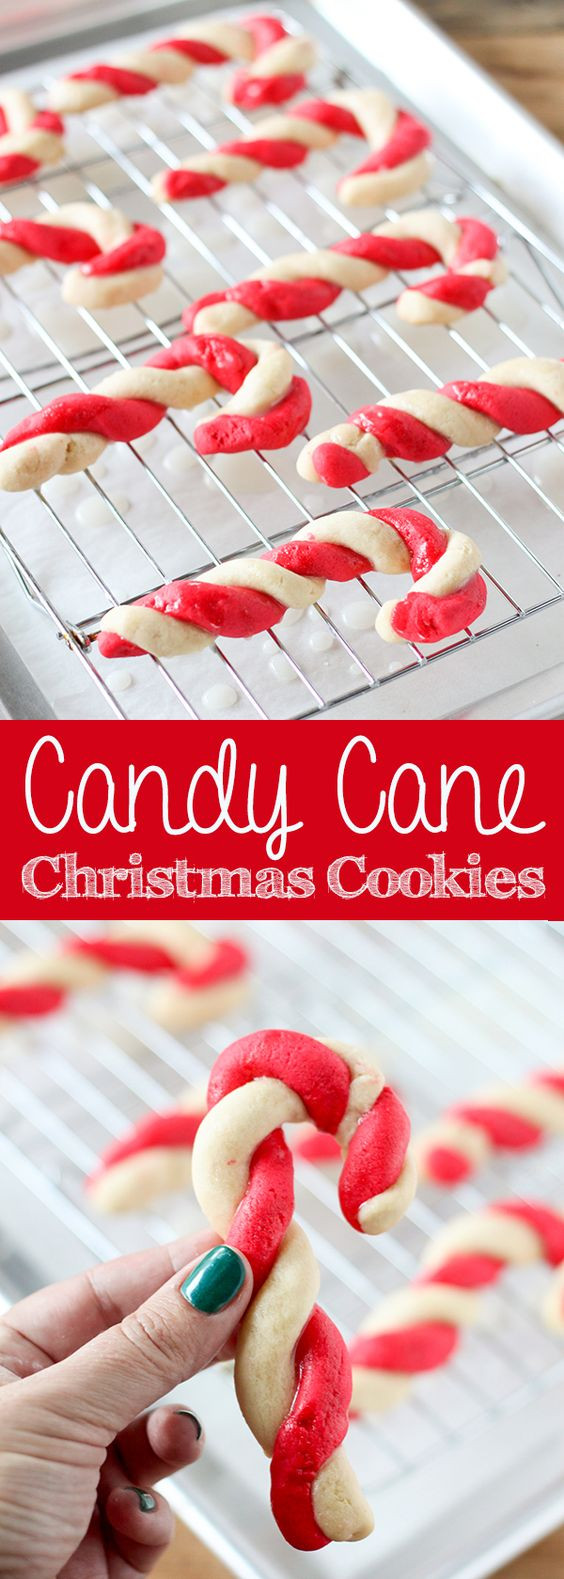 Christmas Candy Cane Cookies  Pinterest • The world's catalog of ideas